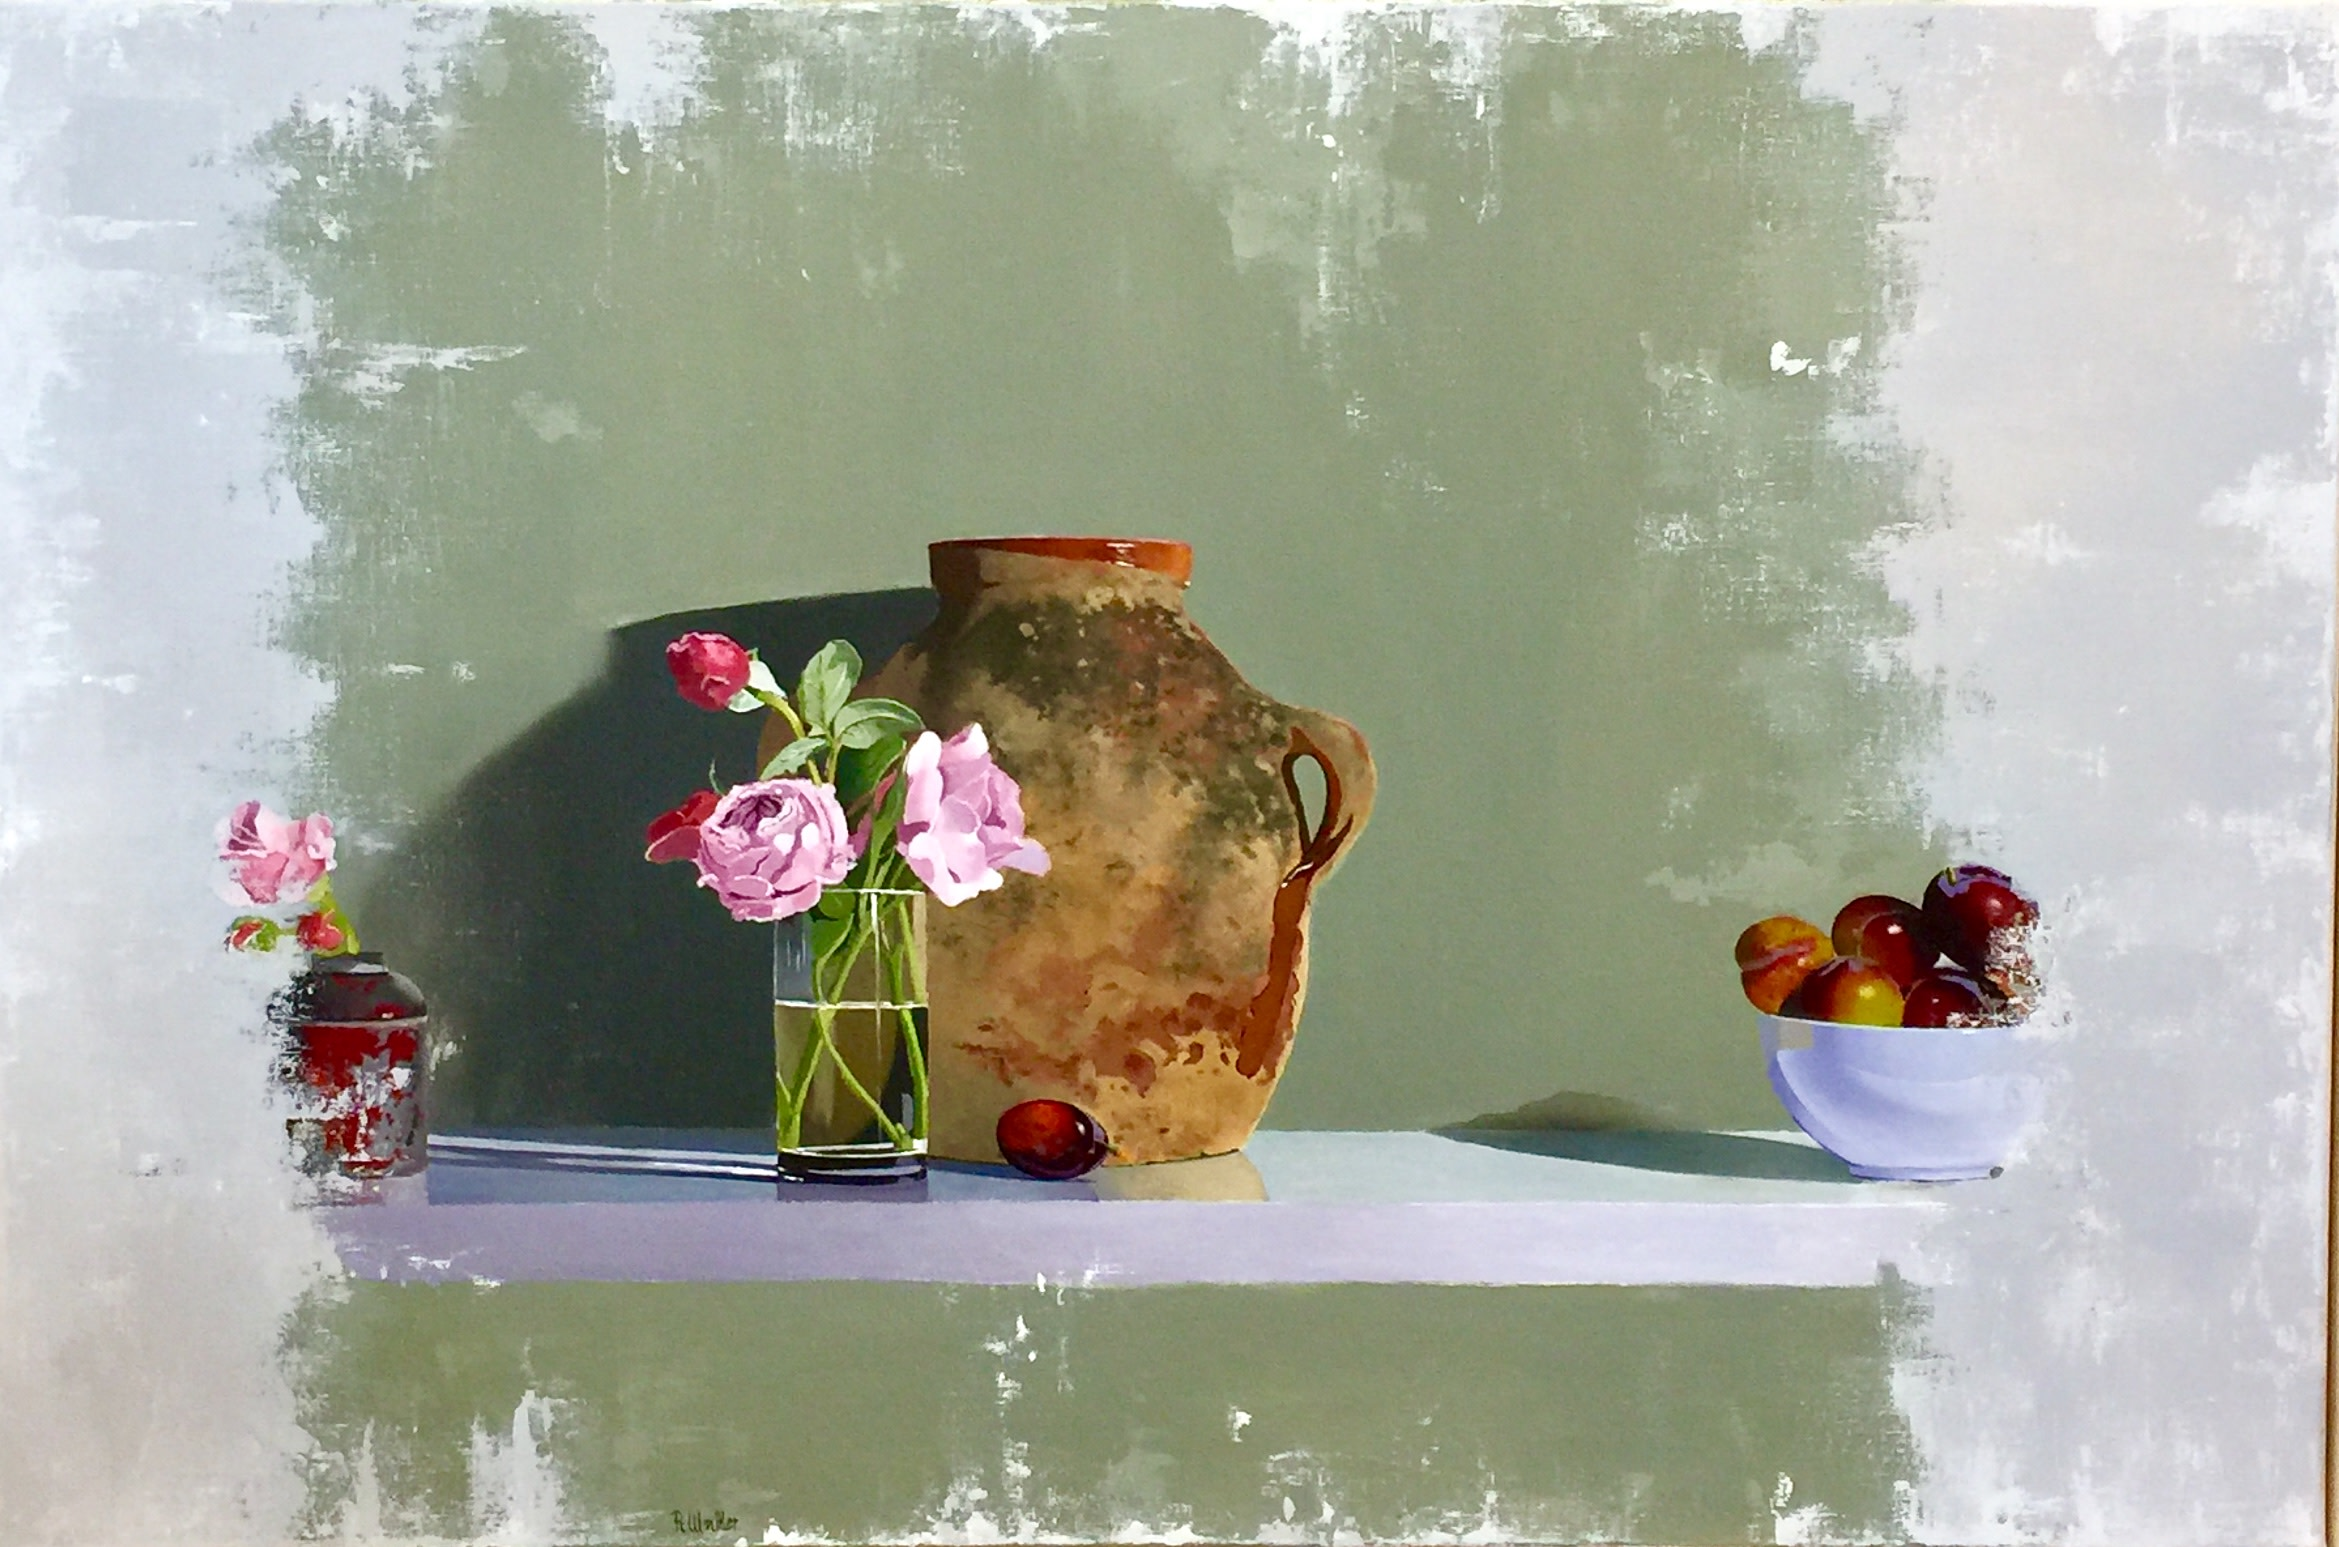 <span class=&#34;link fancybox-details-link&#34;><a href=&#34;/artists/67-robert-walker/works/2290-robert-walker-roses-with-plums-in-hong-kong/&#34;>View Detail Page</a></span><div class=&#34;artist&#34;><strong>Robert Walker</strong></div> <div class=&#34;title&#34;><em>Roses with Plums</em>, In Hong Kong</div> <div class=&#34;medium&#34;>Oil on Canvas </div> <div class=&#34;dimensions&#34;>61 x 91 cm</div><div class=&#34;copyright_line&#34;>Copyright The Artist</div>